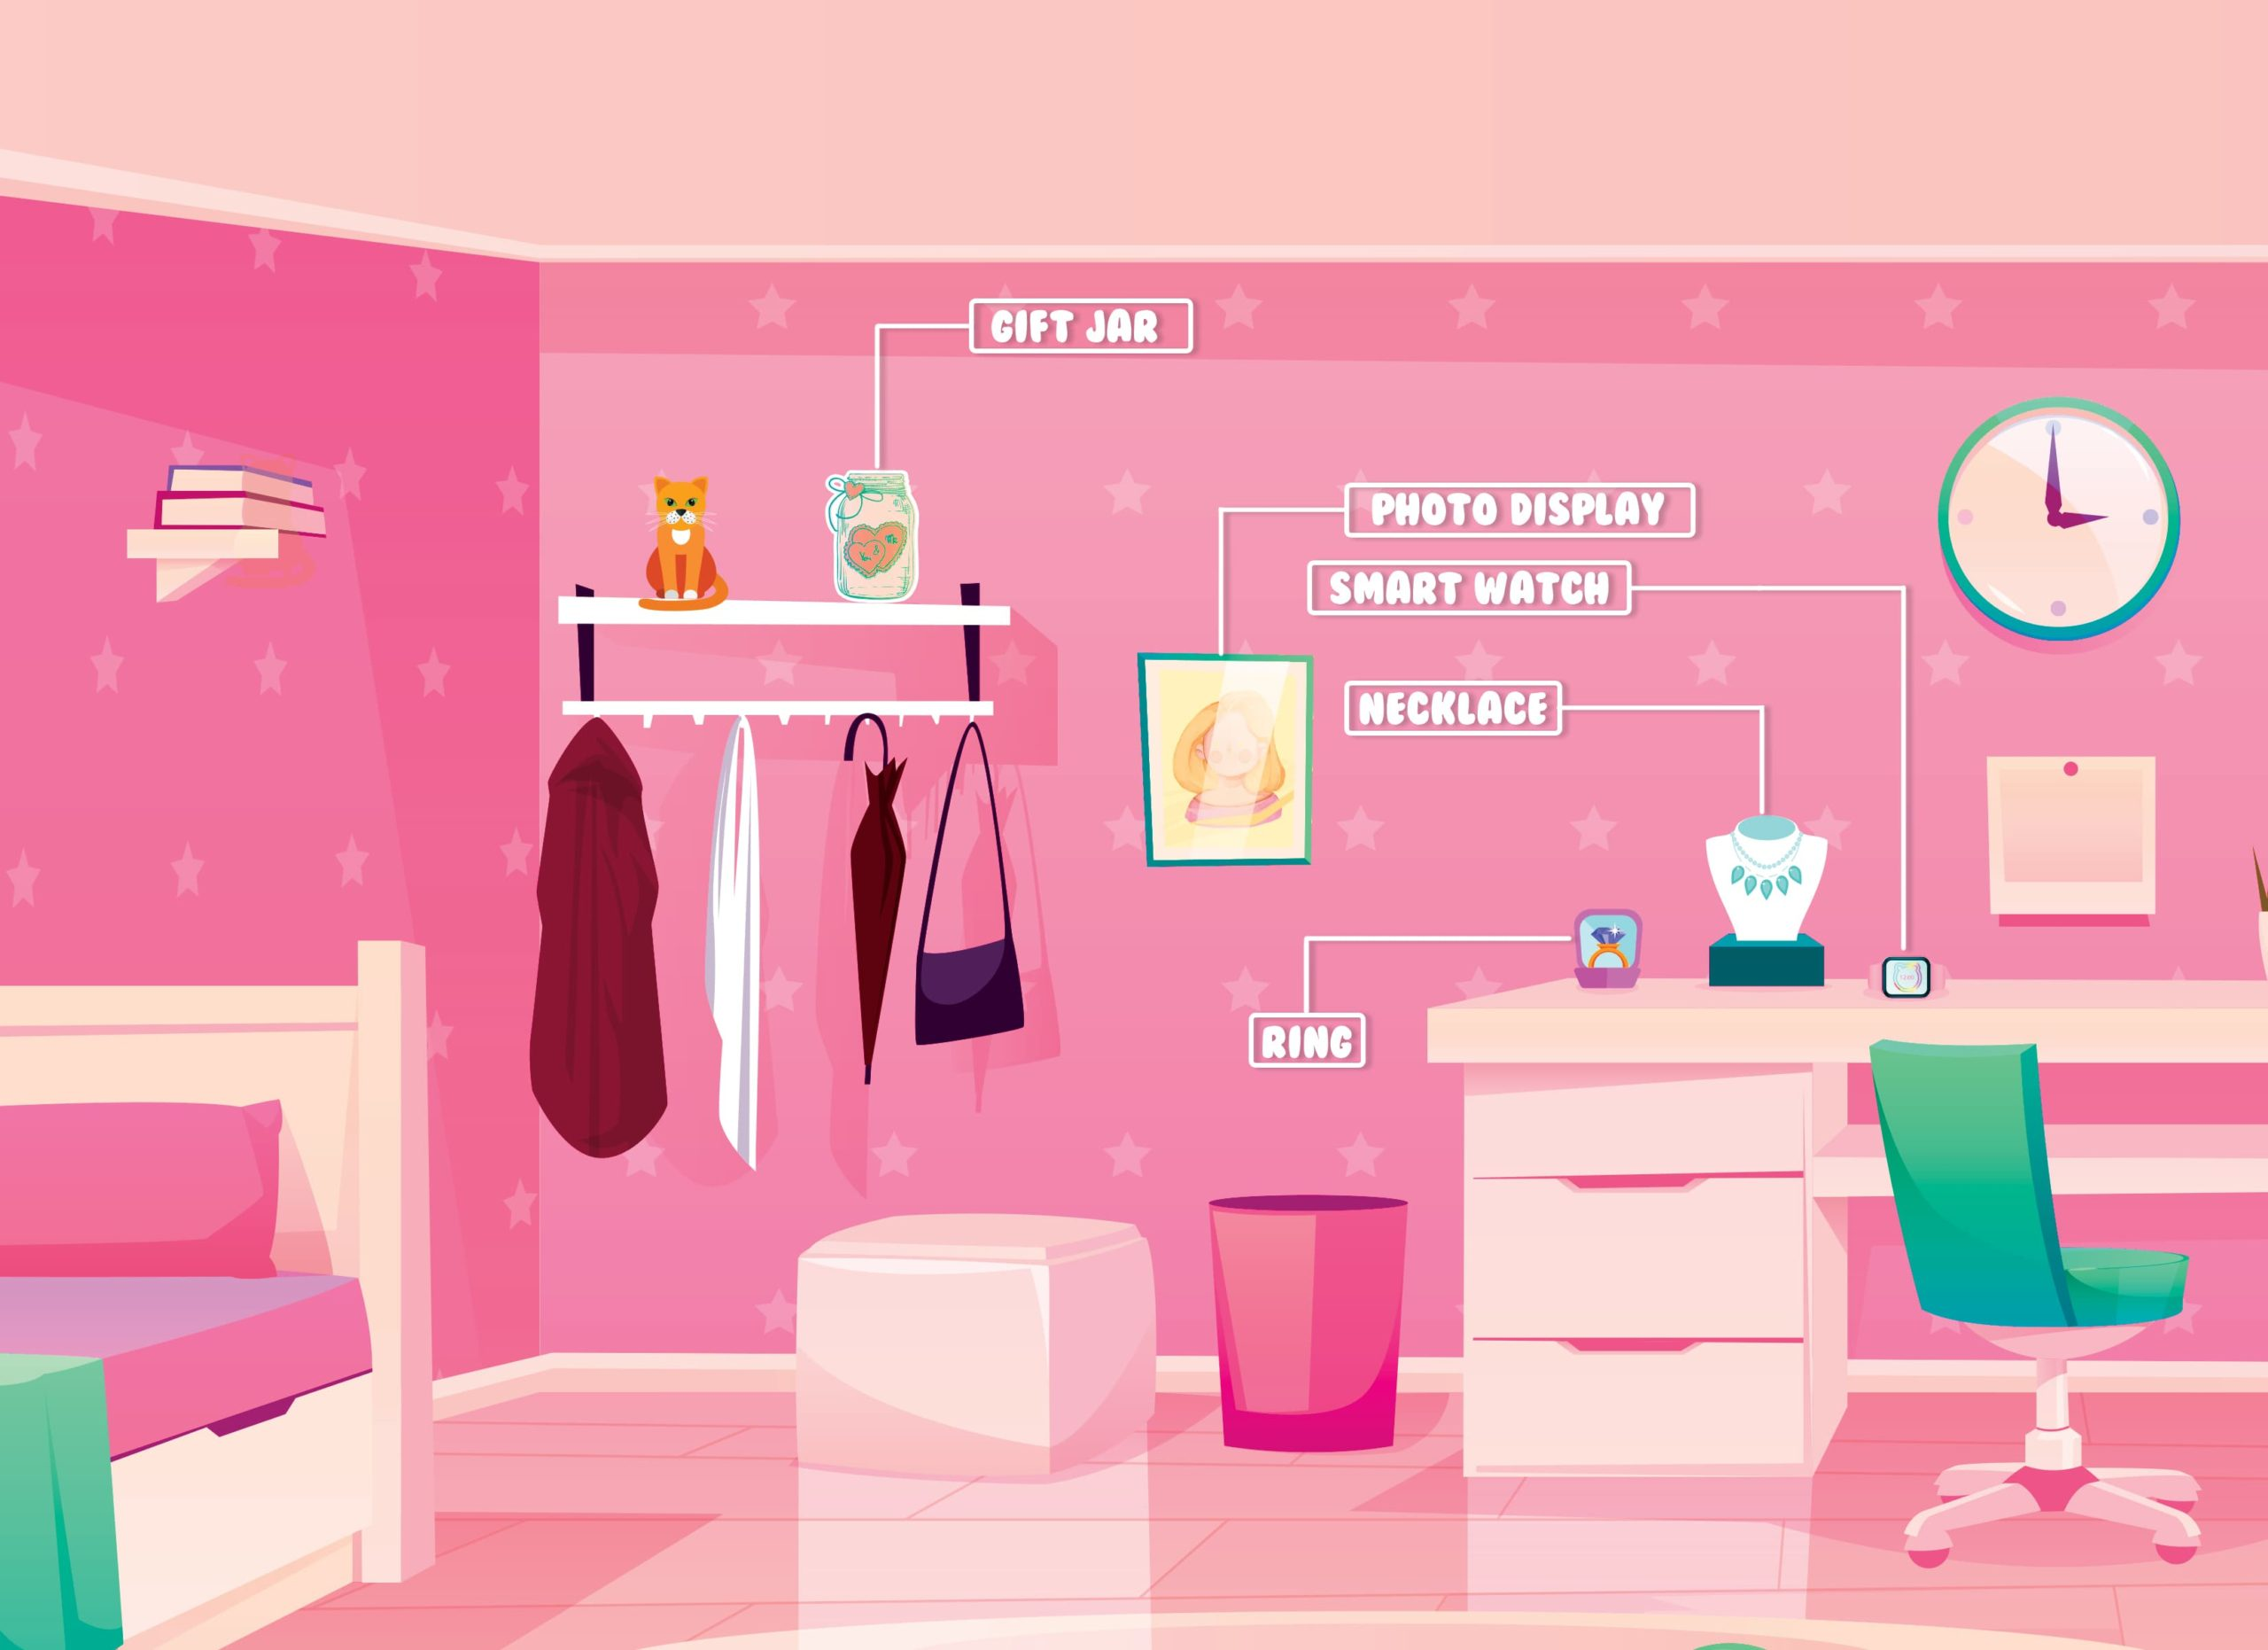 Infographic Gifts every girl wants from her boyfriend